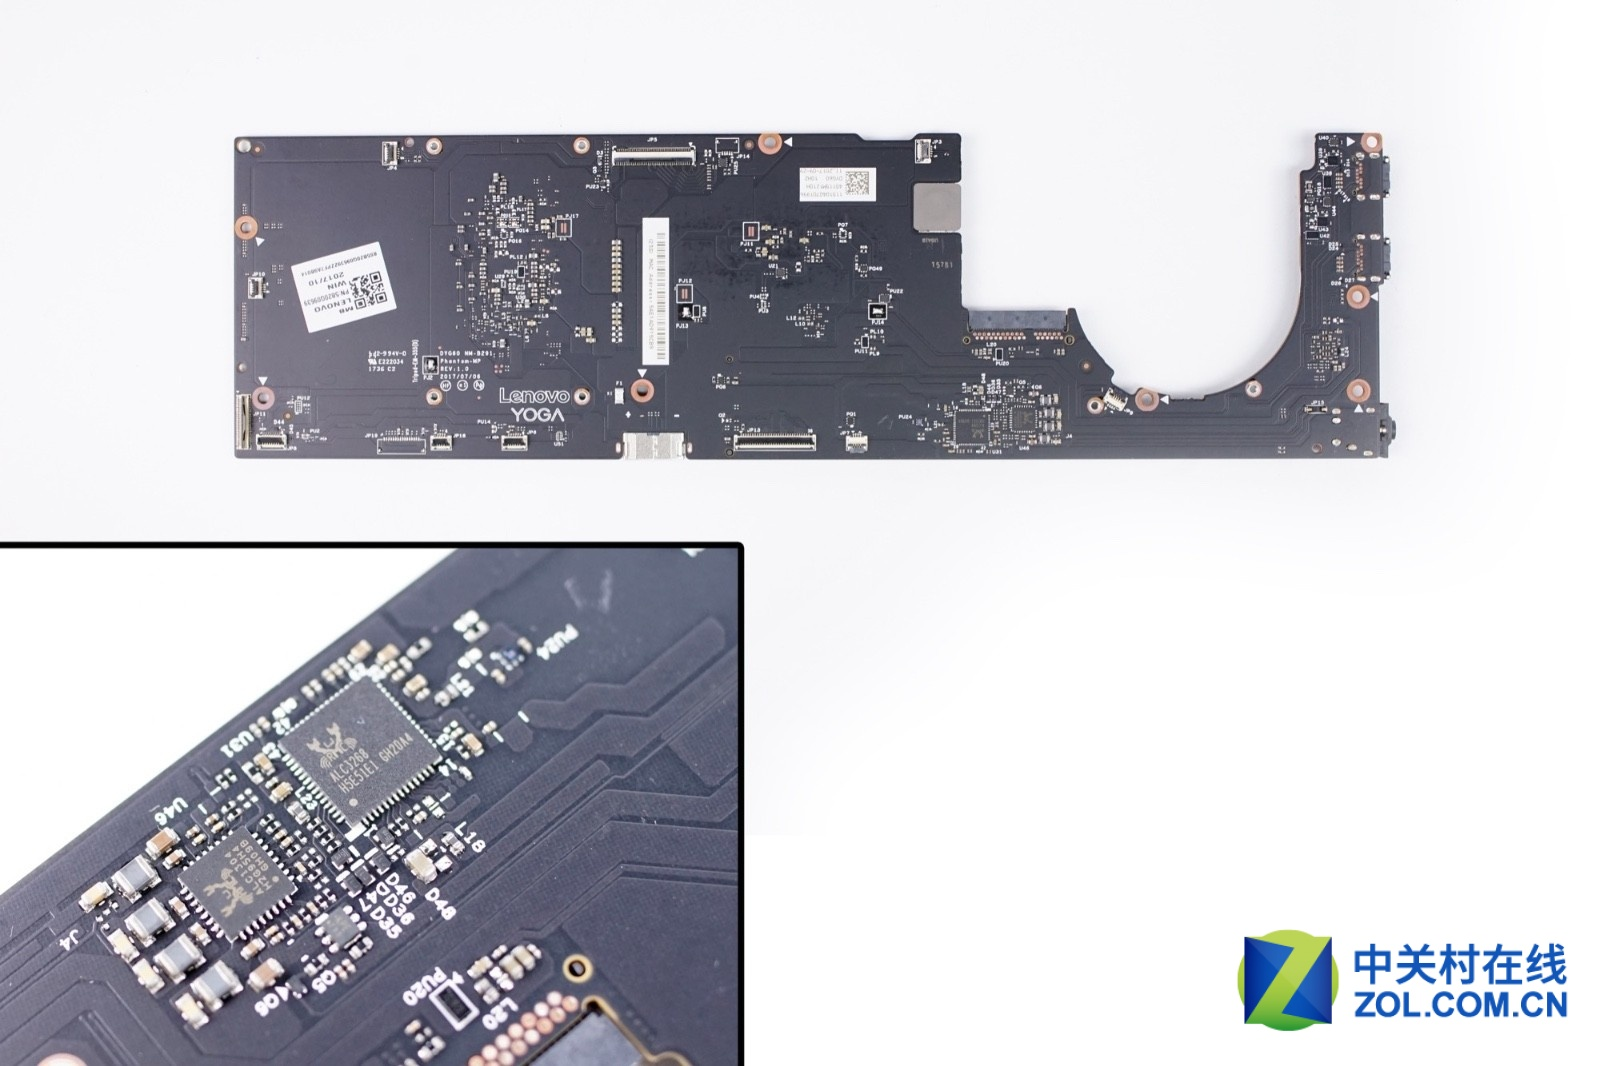 Lenovo Yoga 920 Disassembly (SSD, RAM Upgrade Options) - Laptopmain com